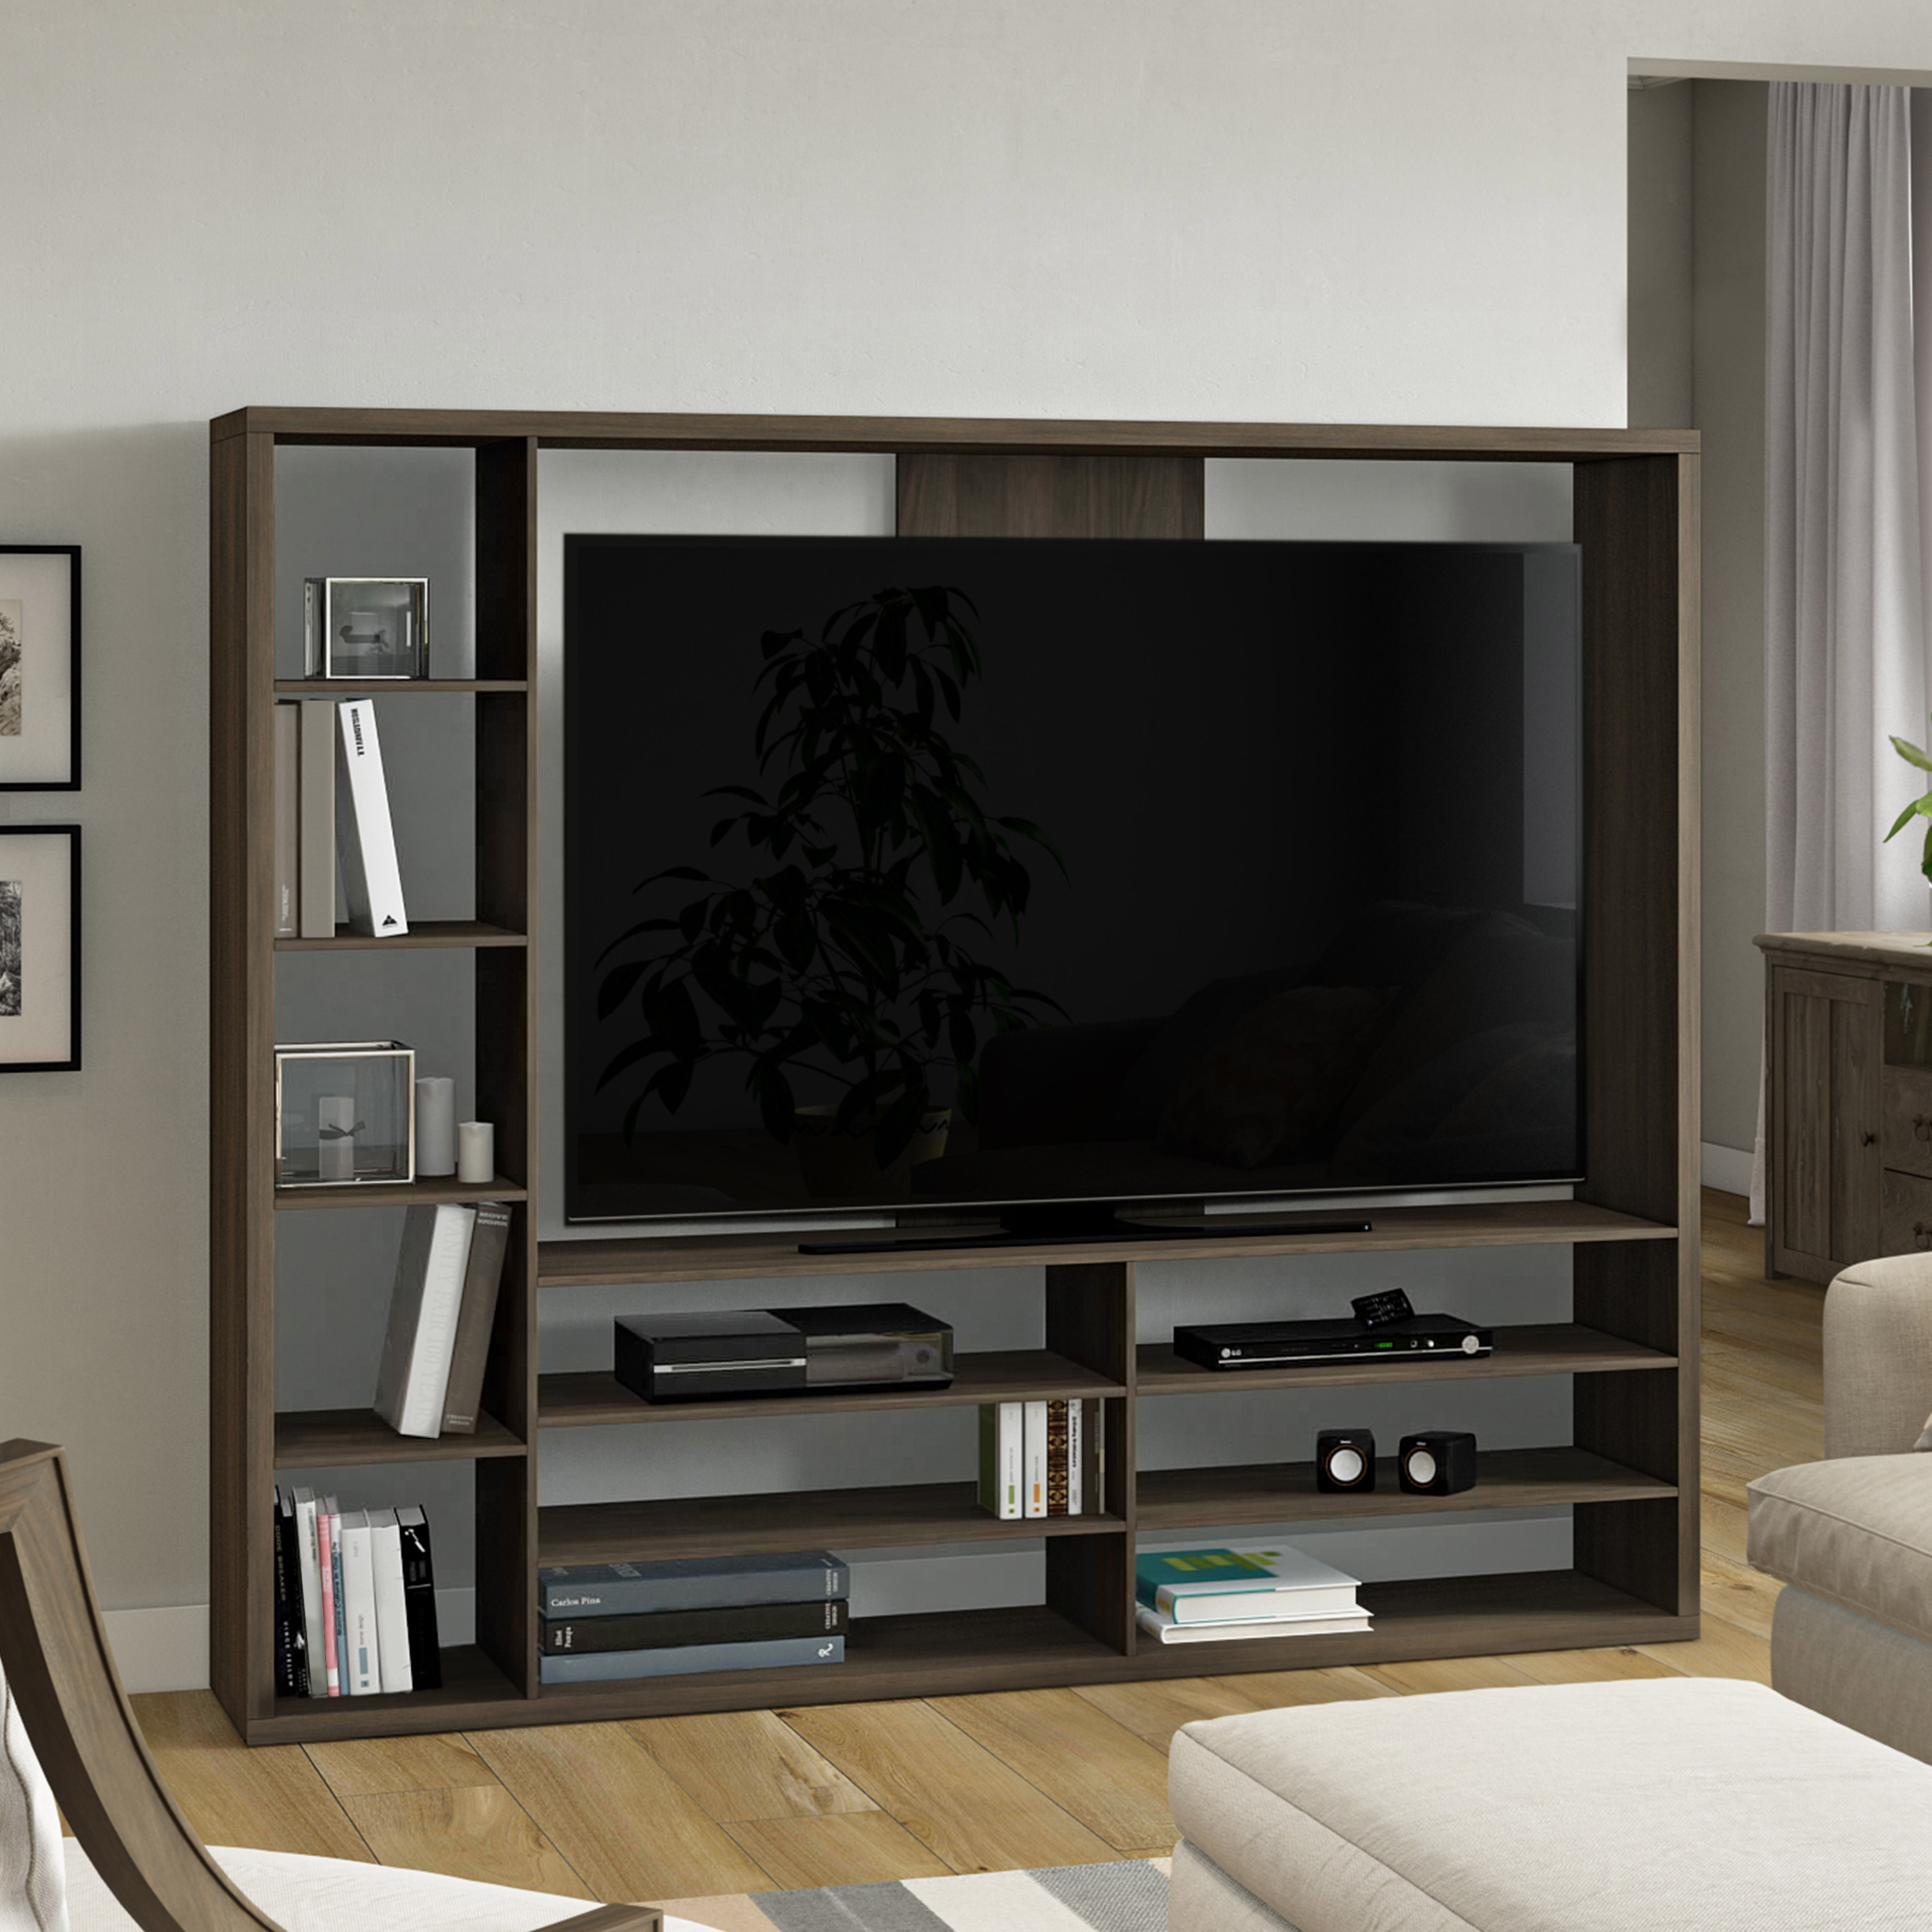 Details About Entertainment Center For Tv Stand 55 W Bookcase Large Open Shelf Media Storage